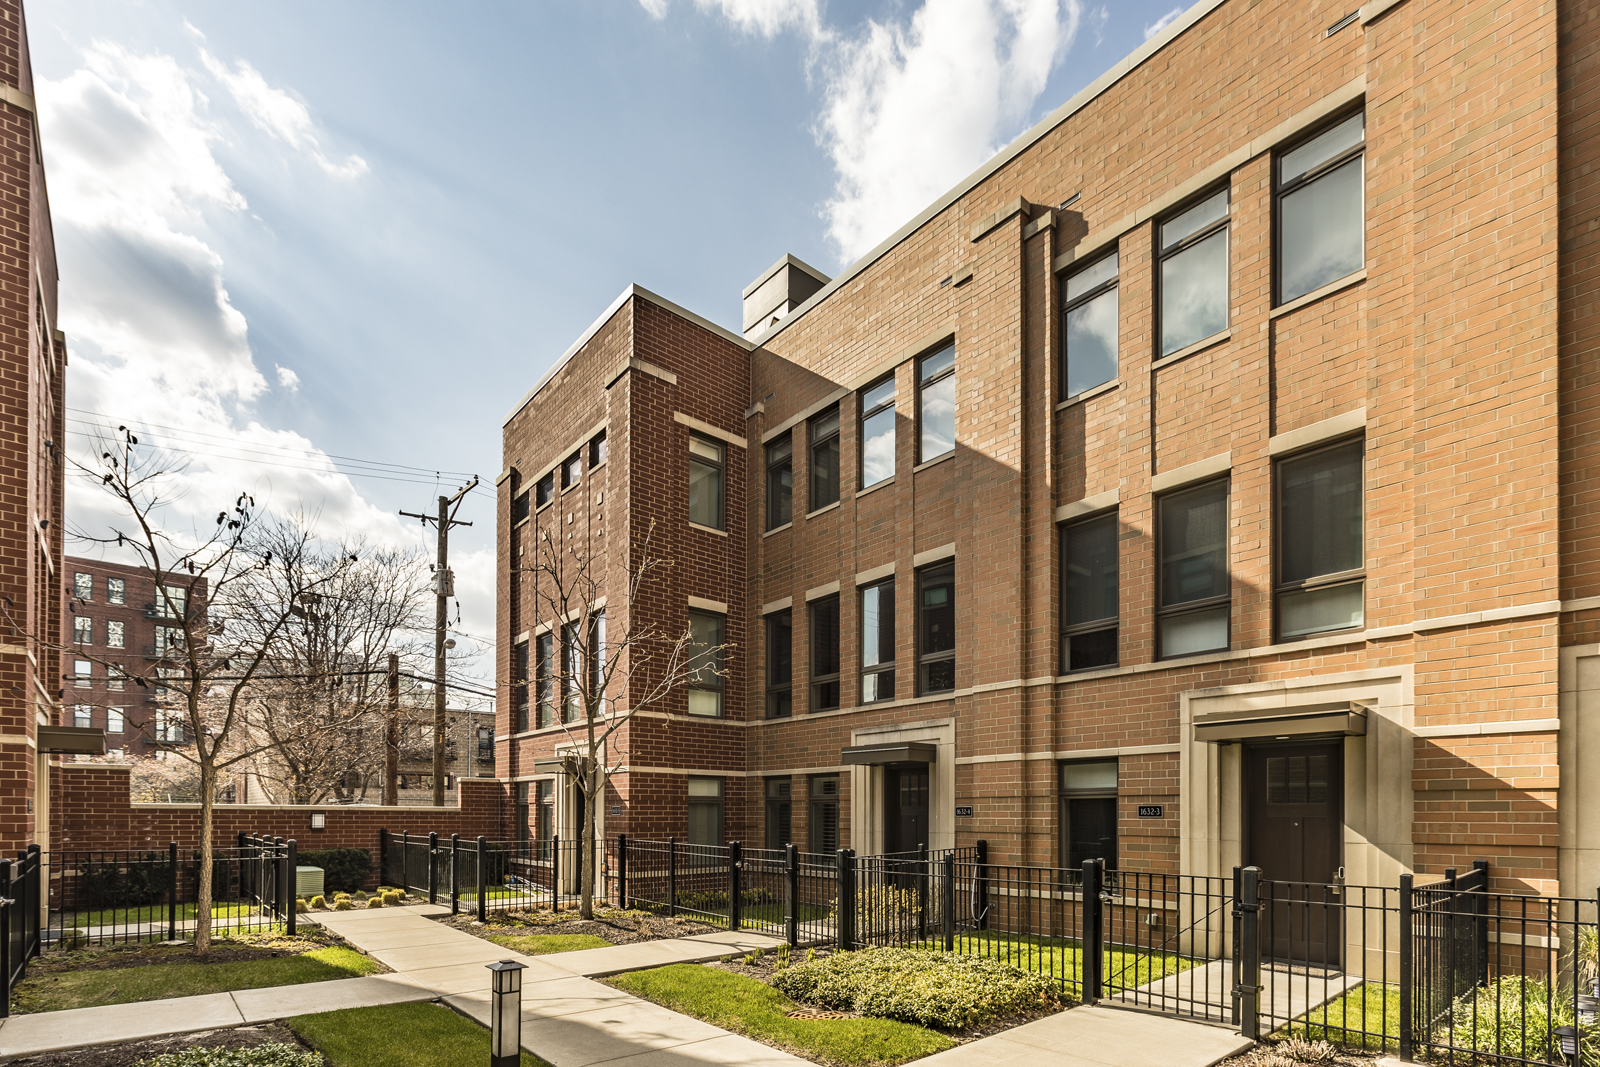 primary photo for 1632 South Prairie Avenue 4, Chicago, IL 60616, US